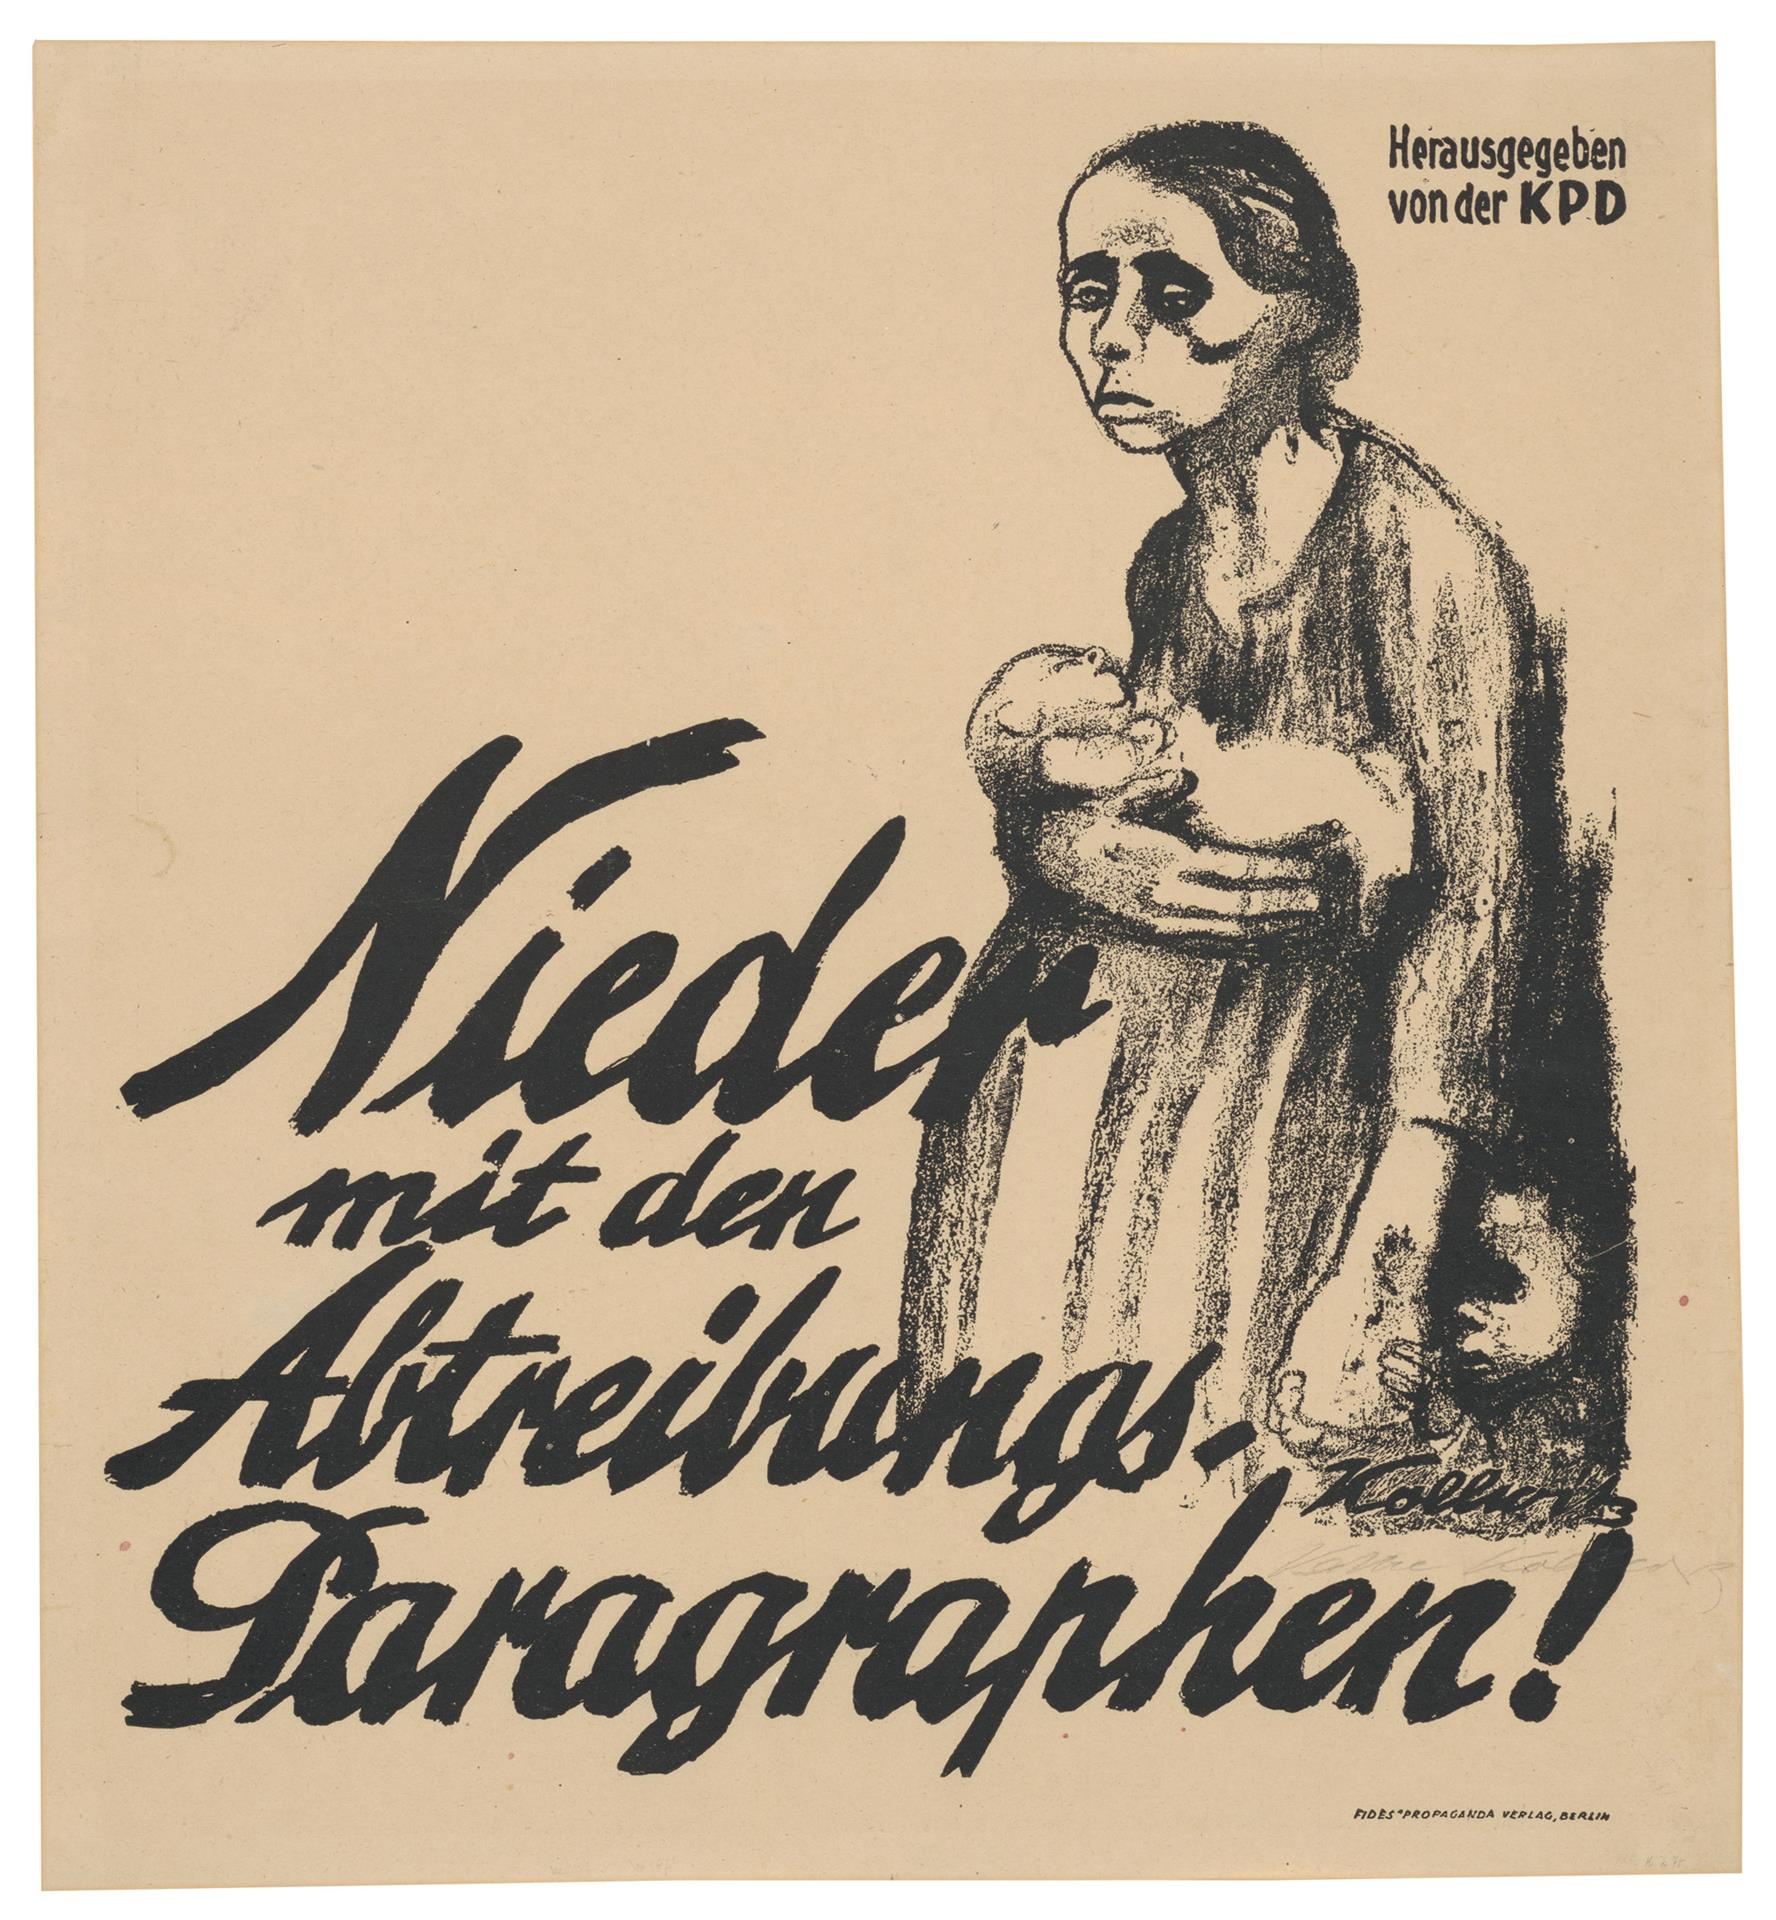 Käthe Kollwitz, Poster against Paragraph 218, 1923, crayon lithograph (transfer of a drawing on transparent paper), Kn 198 II, Cologne Kollwitz Collection © Käthe Kollwitz Museum Köln